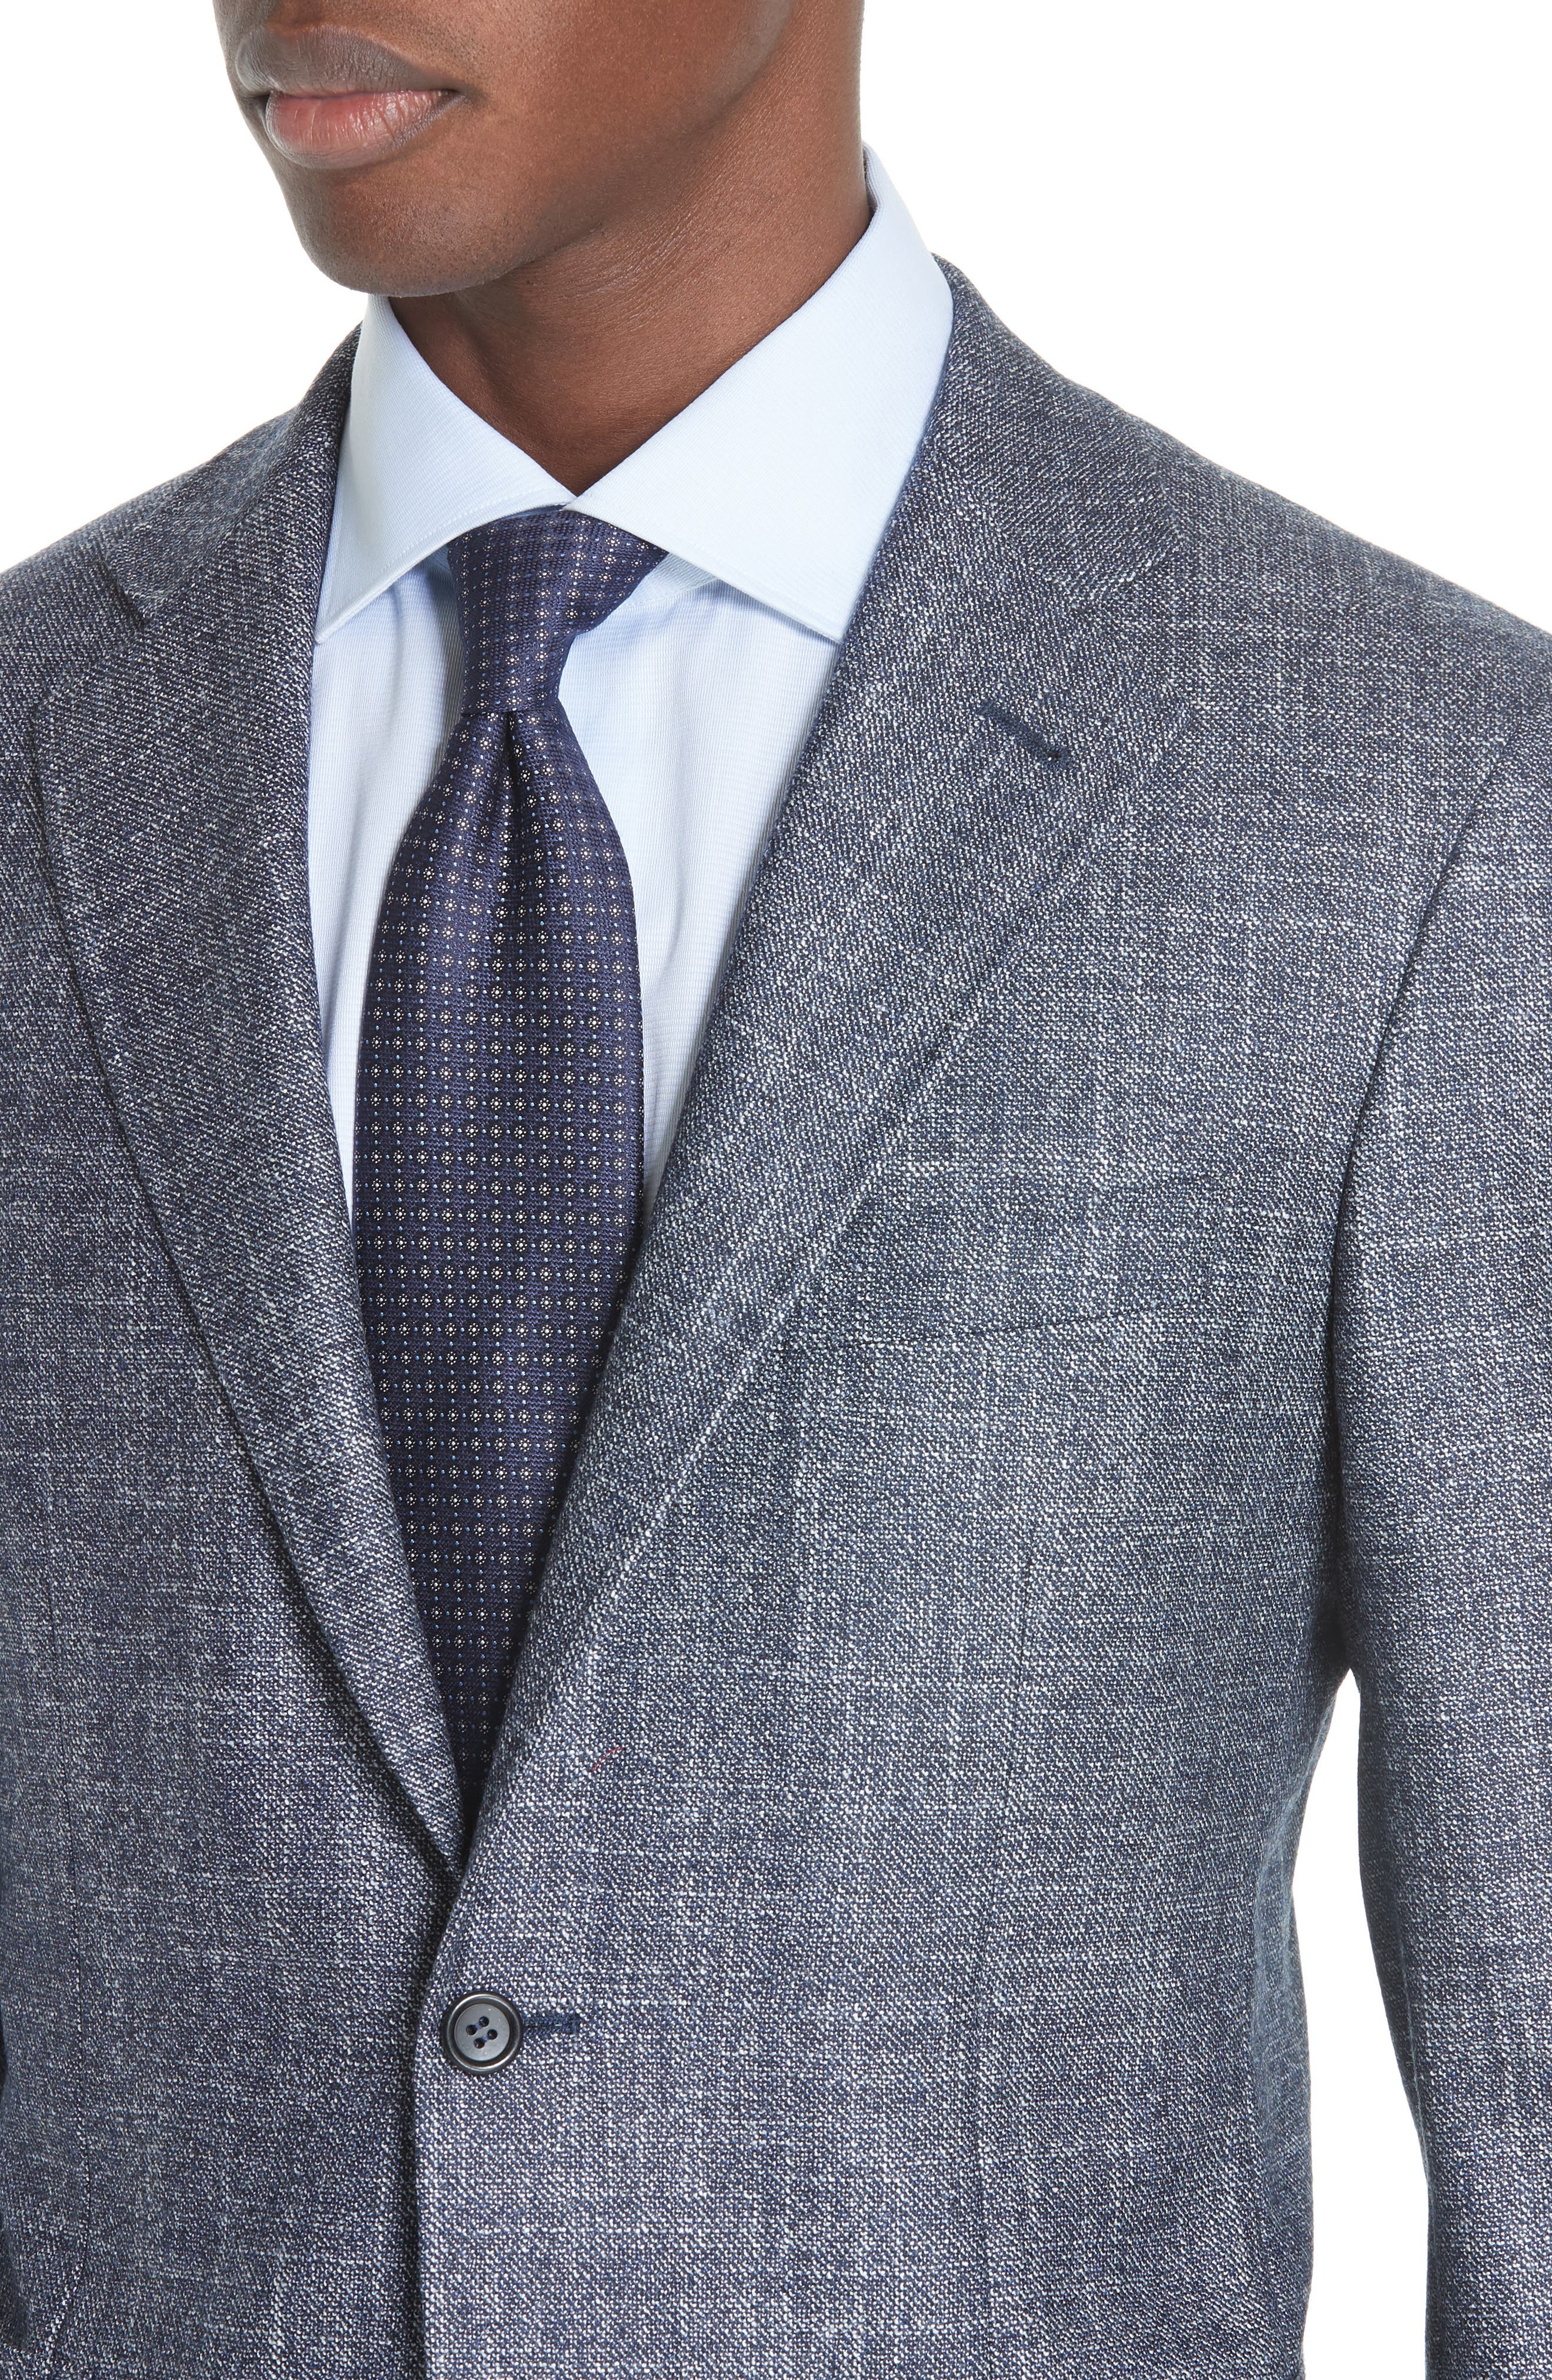 Kei Classic Fit Wool Blend Blazer,                             Alternate thumbnail 4, color,                             NAVY